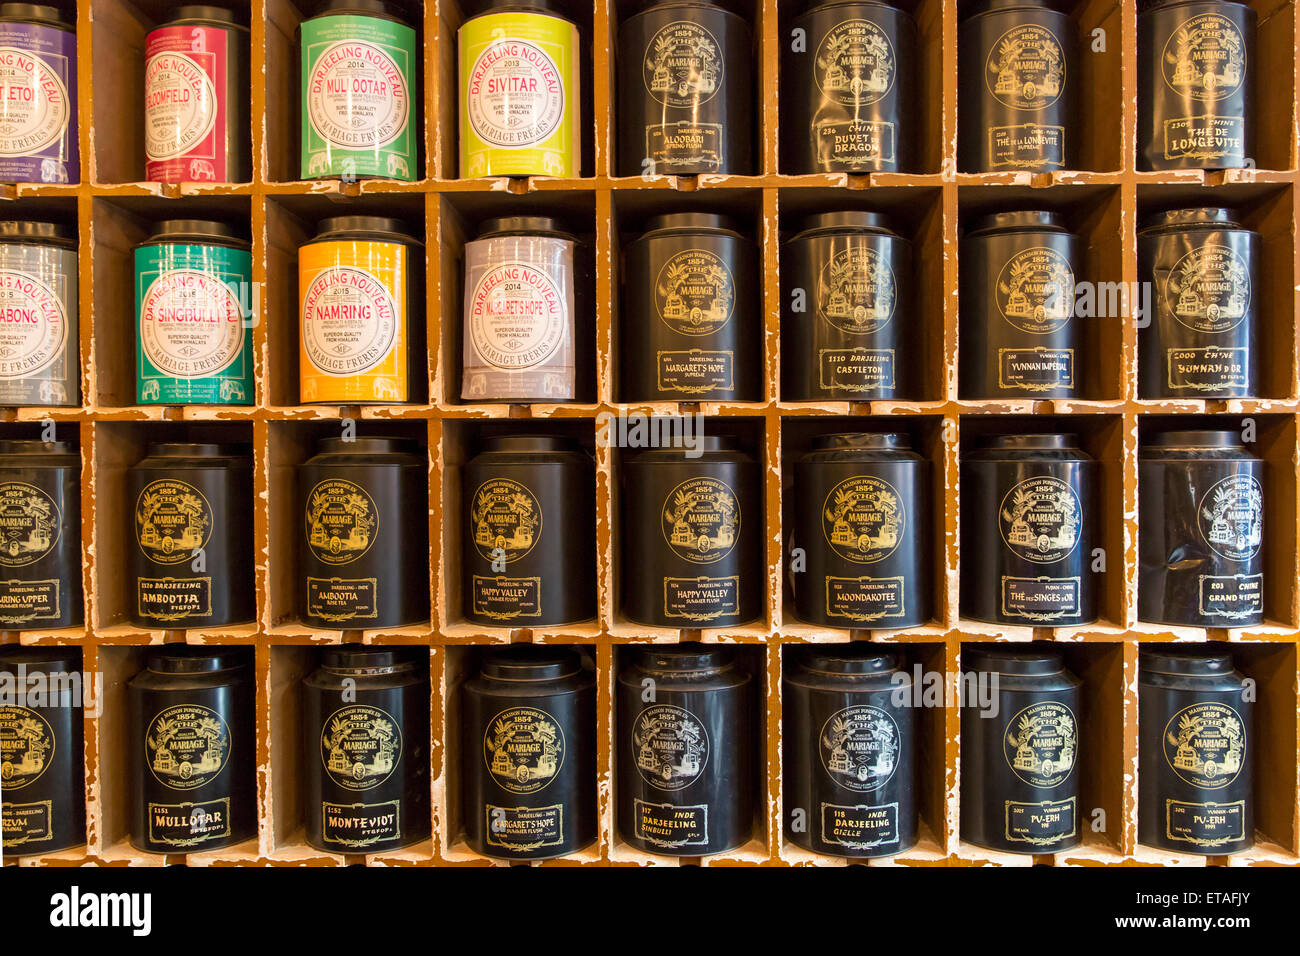 Salon De The Mariage Freres Paris Canisters Of Tea Wall Display At World Famous Mariage